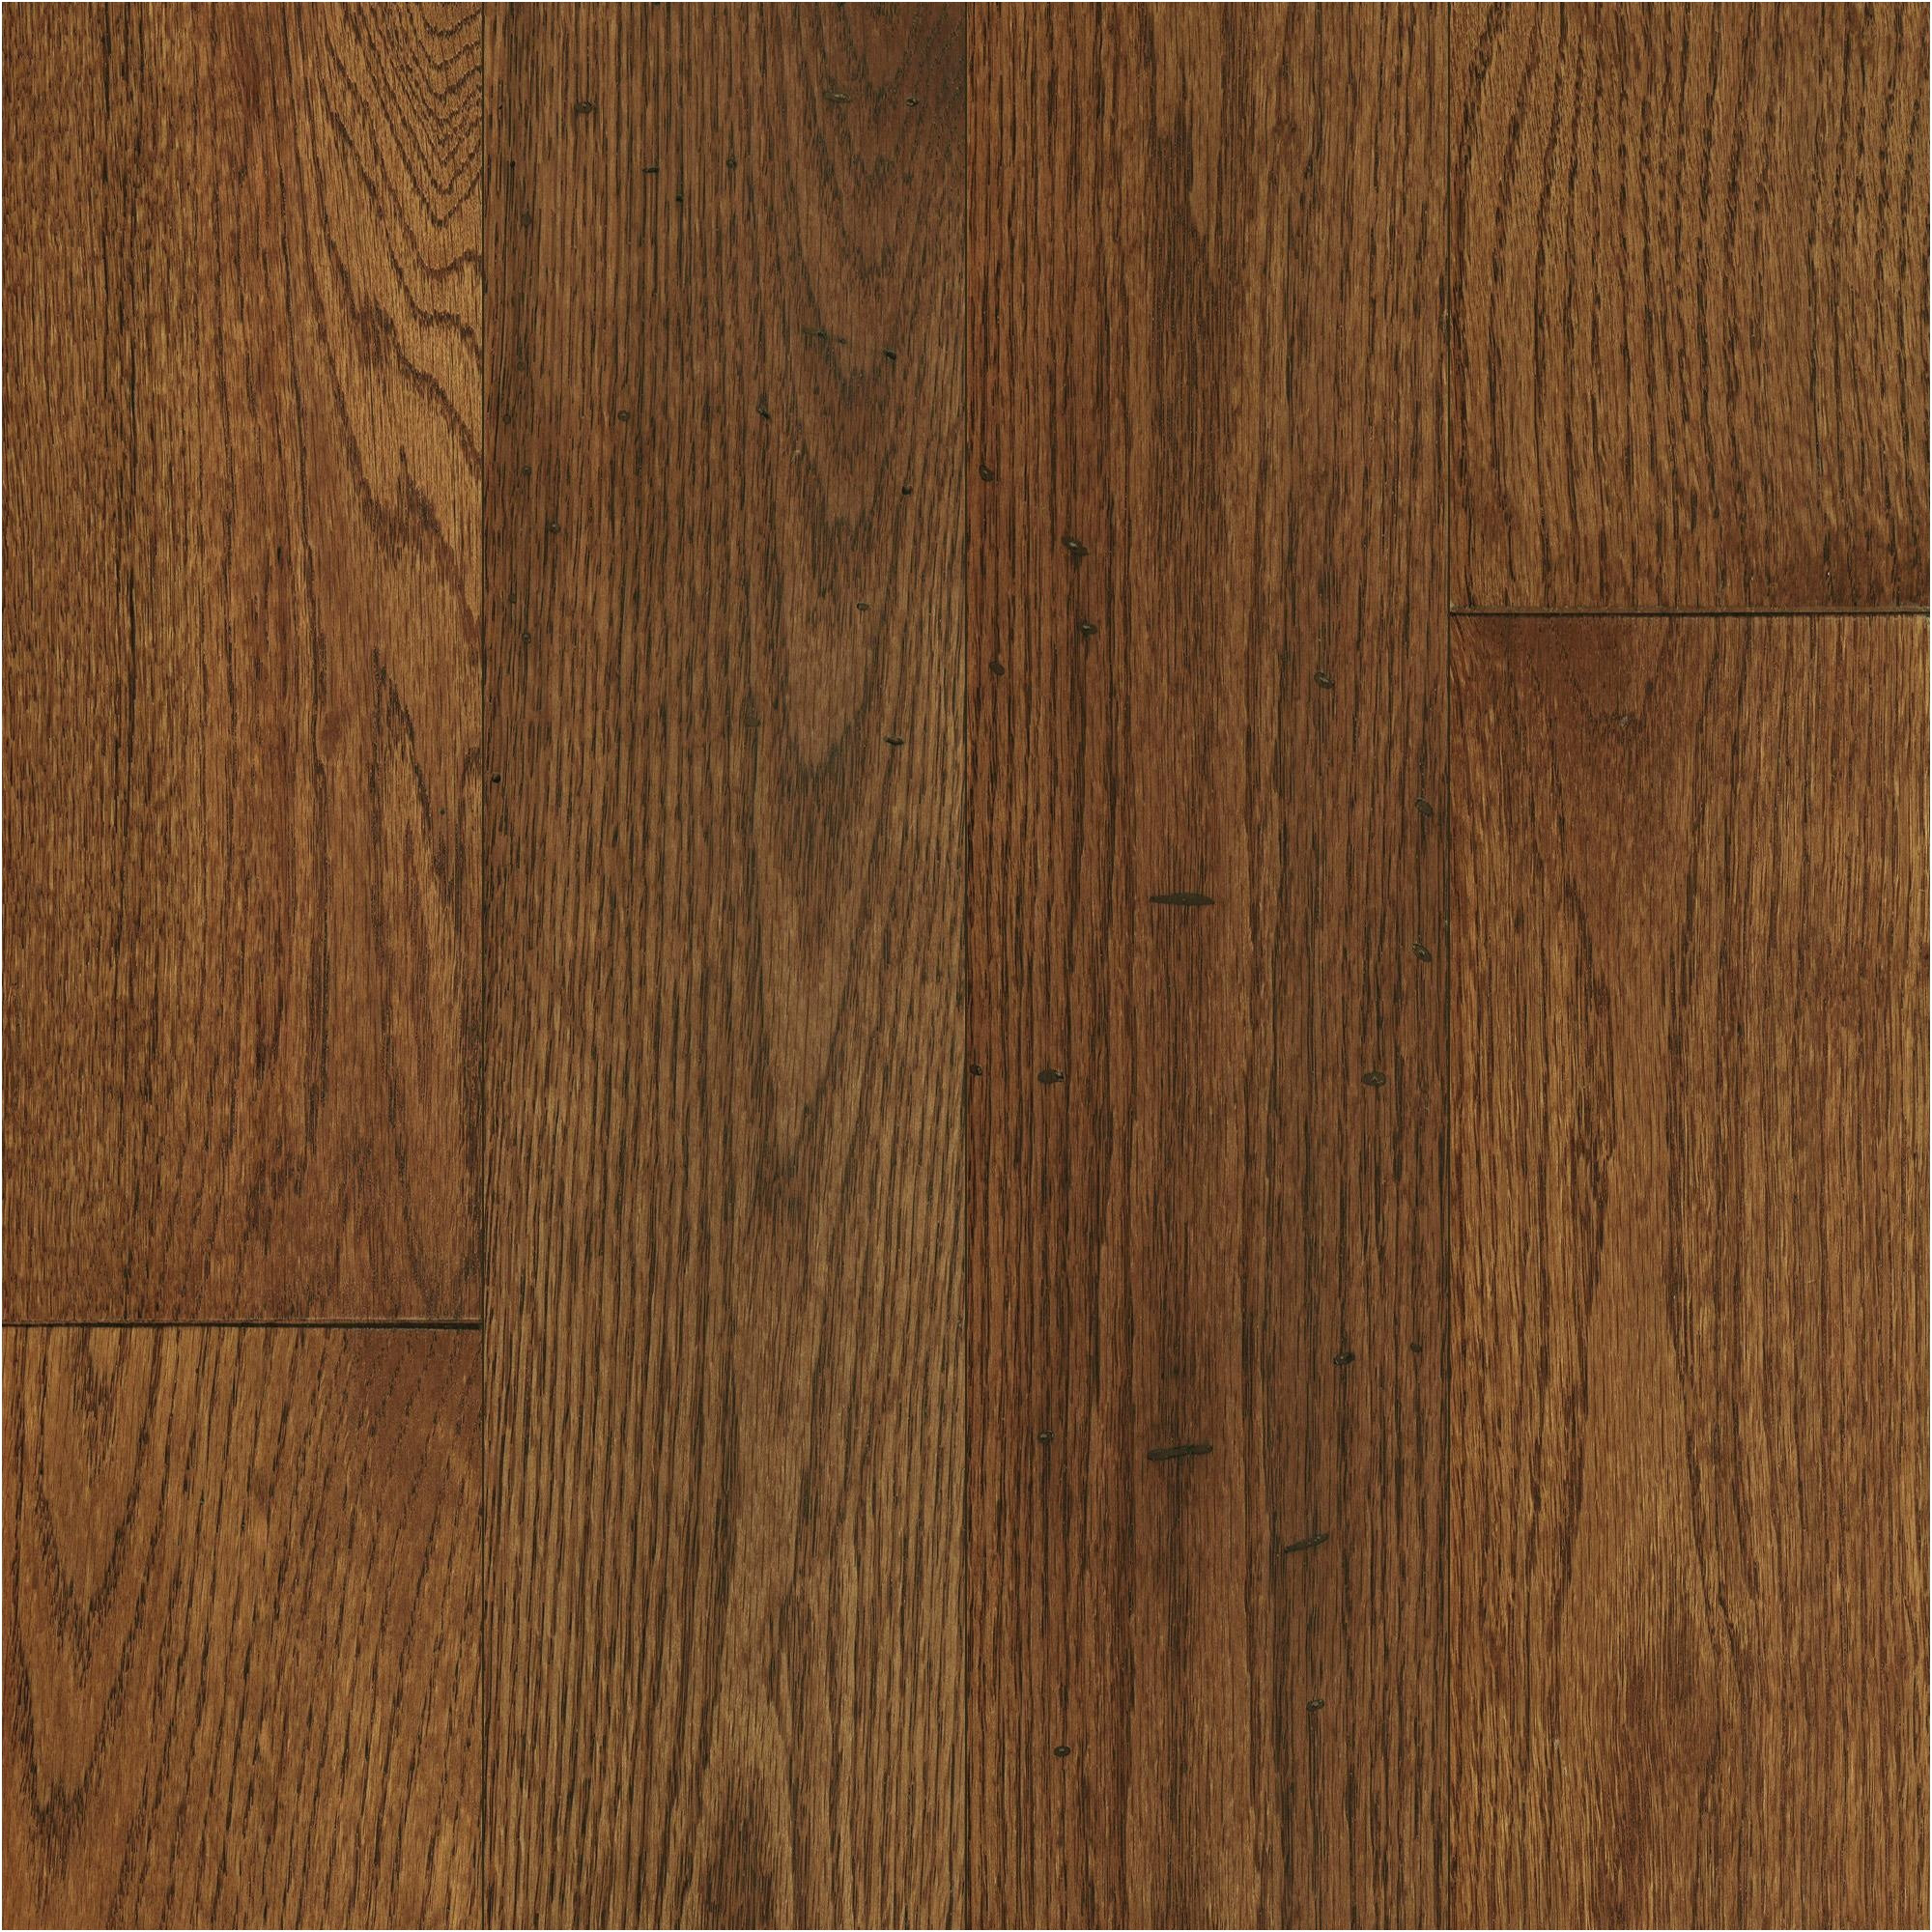 unfinished hardwood flooring suppliers of unfinished hardwood flooring for sale flooring design within unfinished hardwood flooring for sale lovely hardwood floor design wood floor installation cost hardwood of unfinished